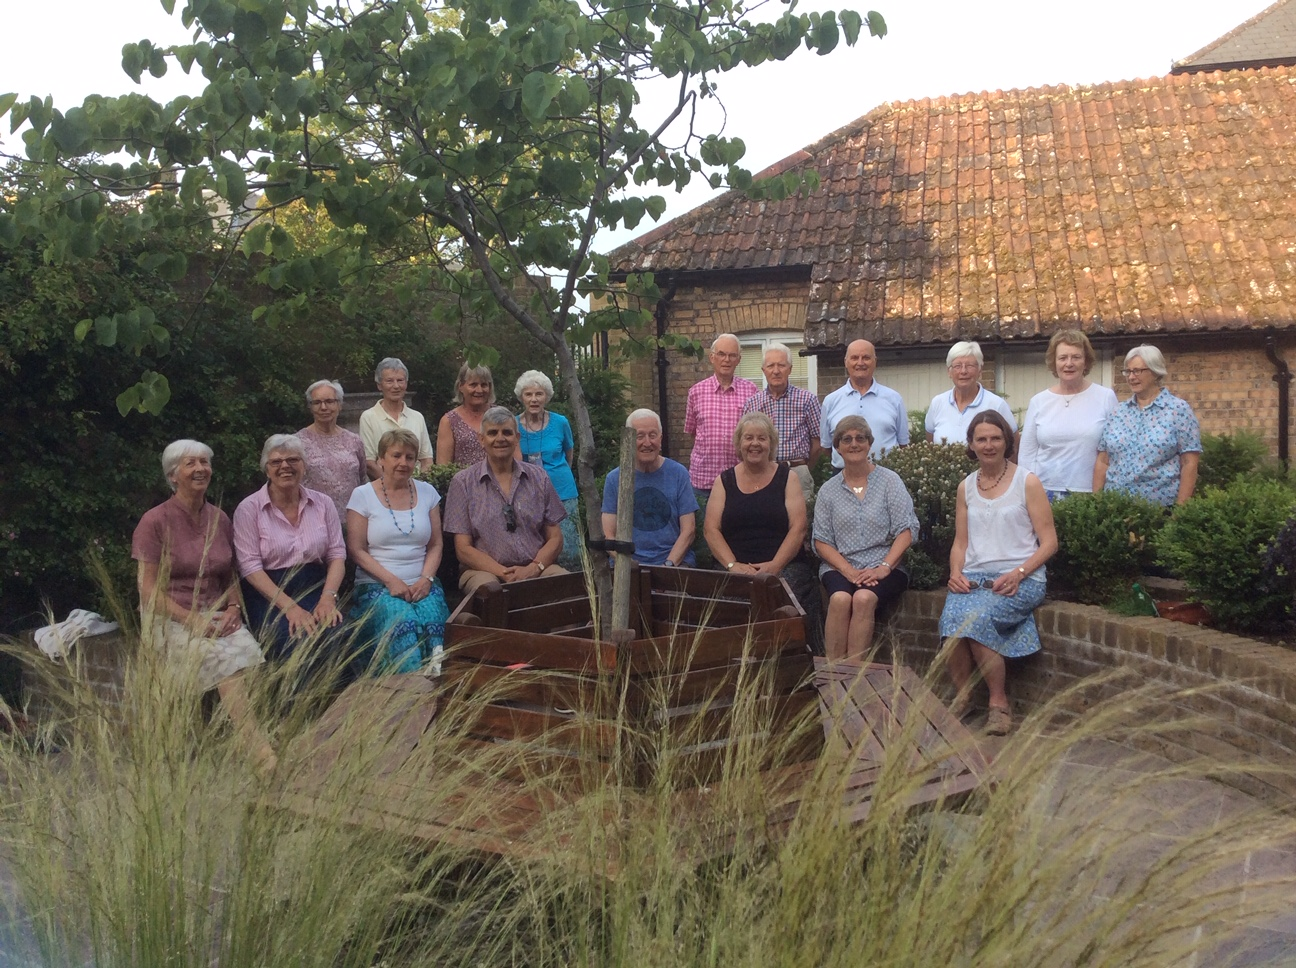 Members of Heart & Soul at the Quiet Space in Poundbury